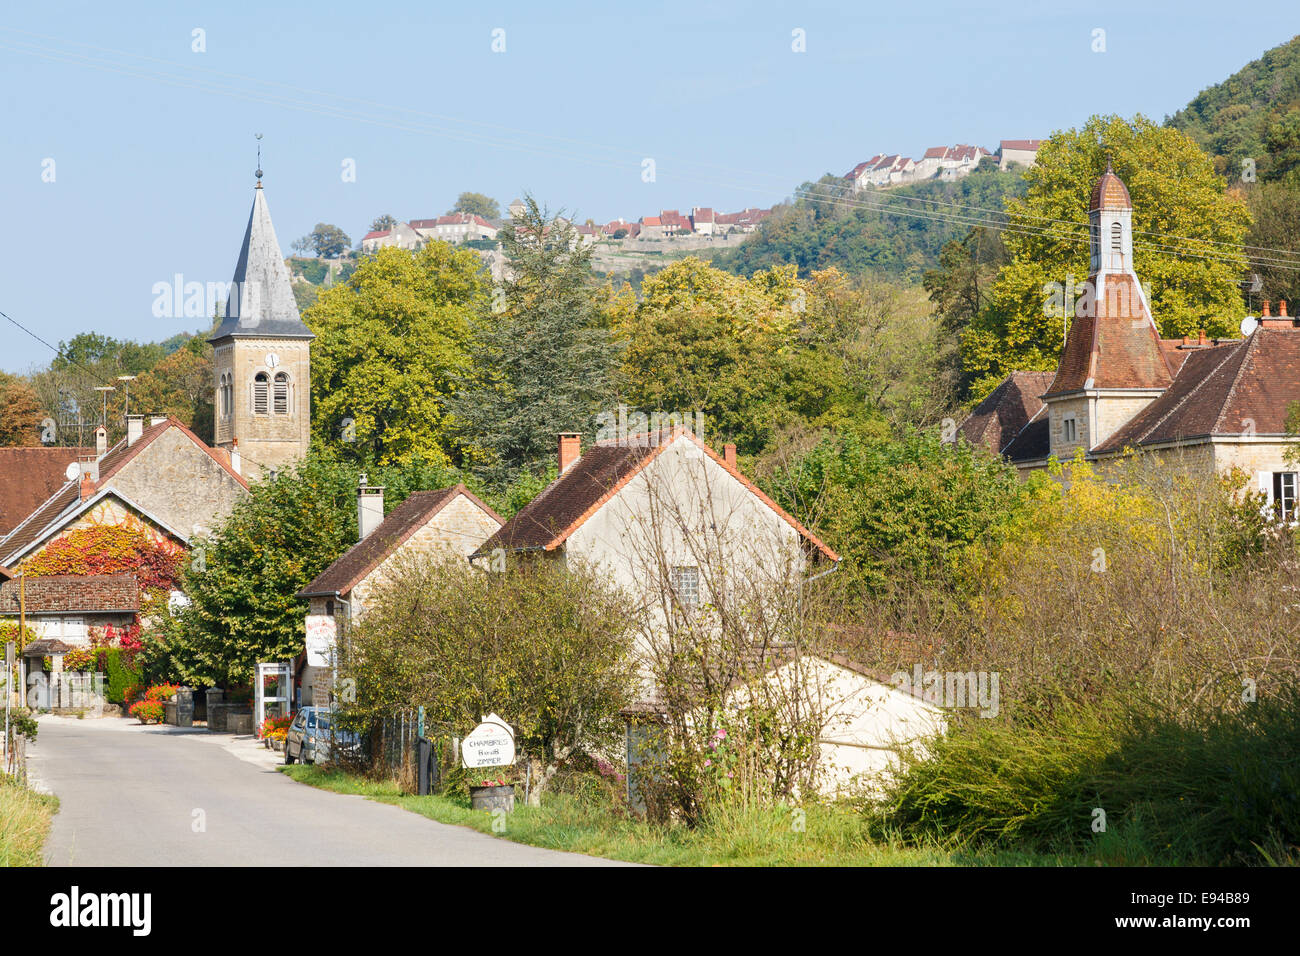 french village of nevy sur seille below chateau chalon near stock photo royalty free image. Black Bedroom Furniture Sets. Home Design Ideas